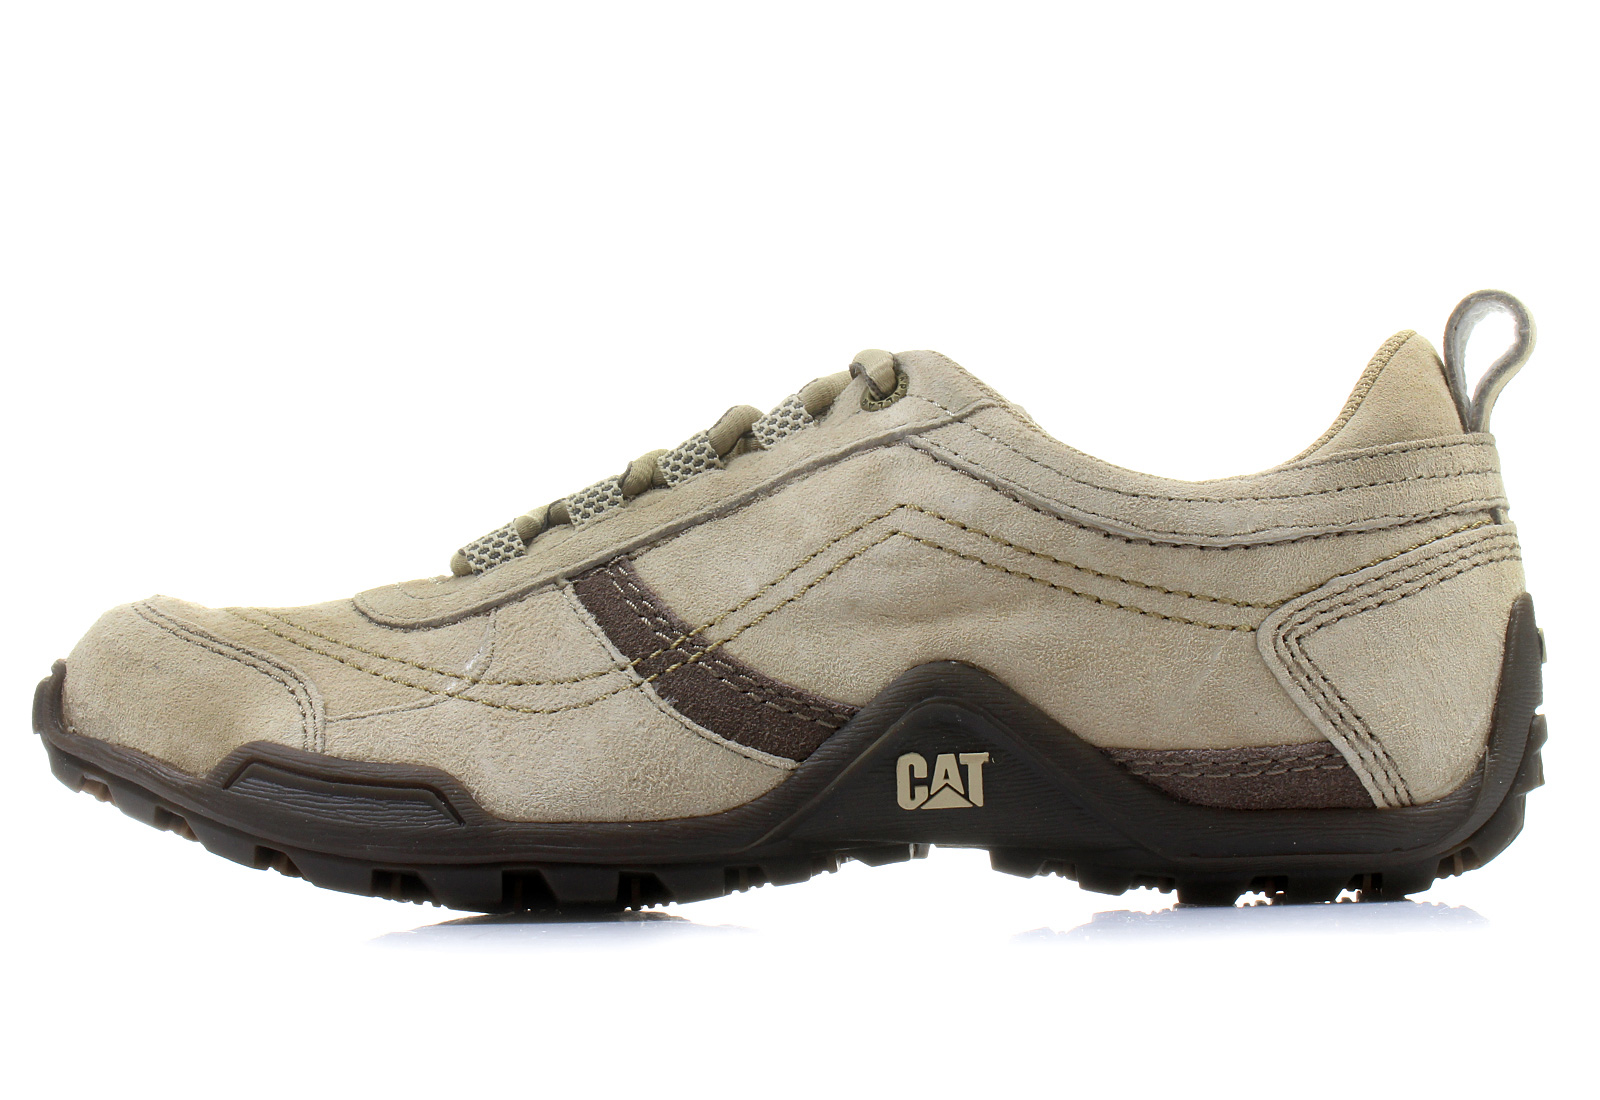 Cat Sport Shoes Price